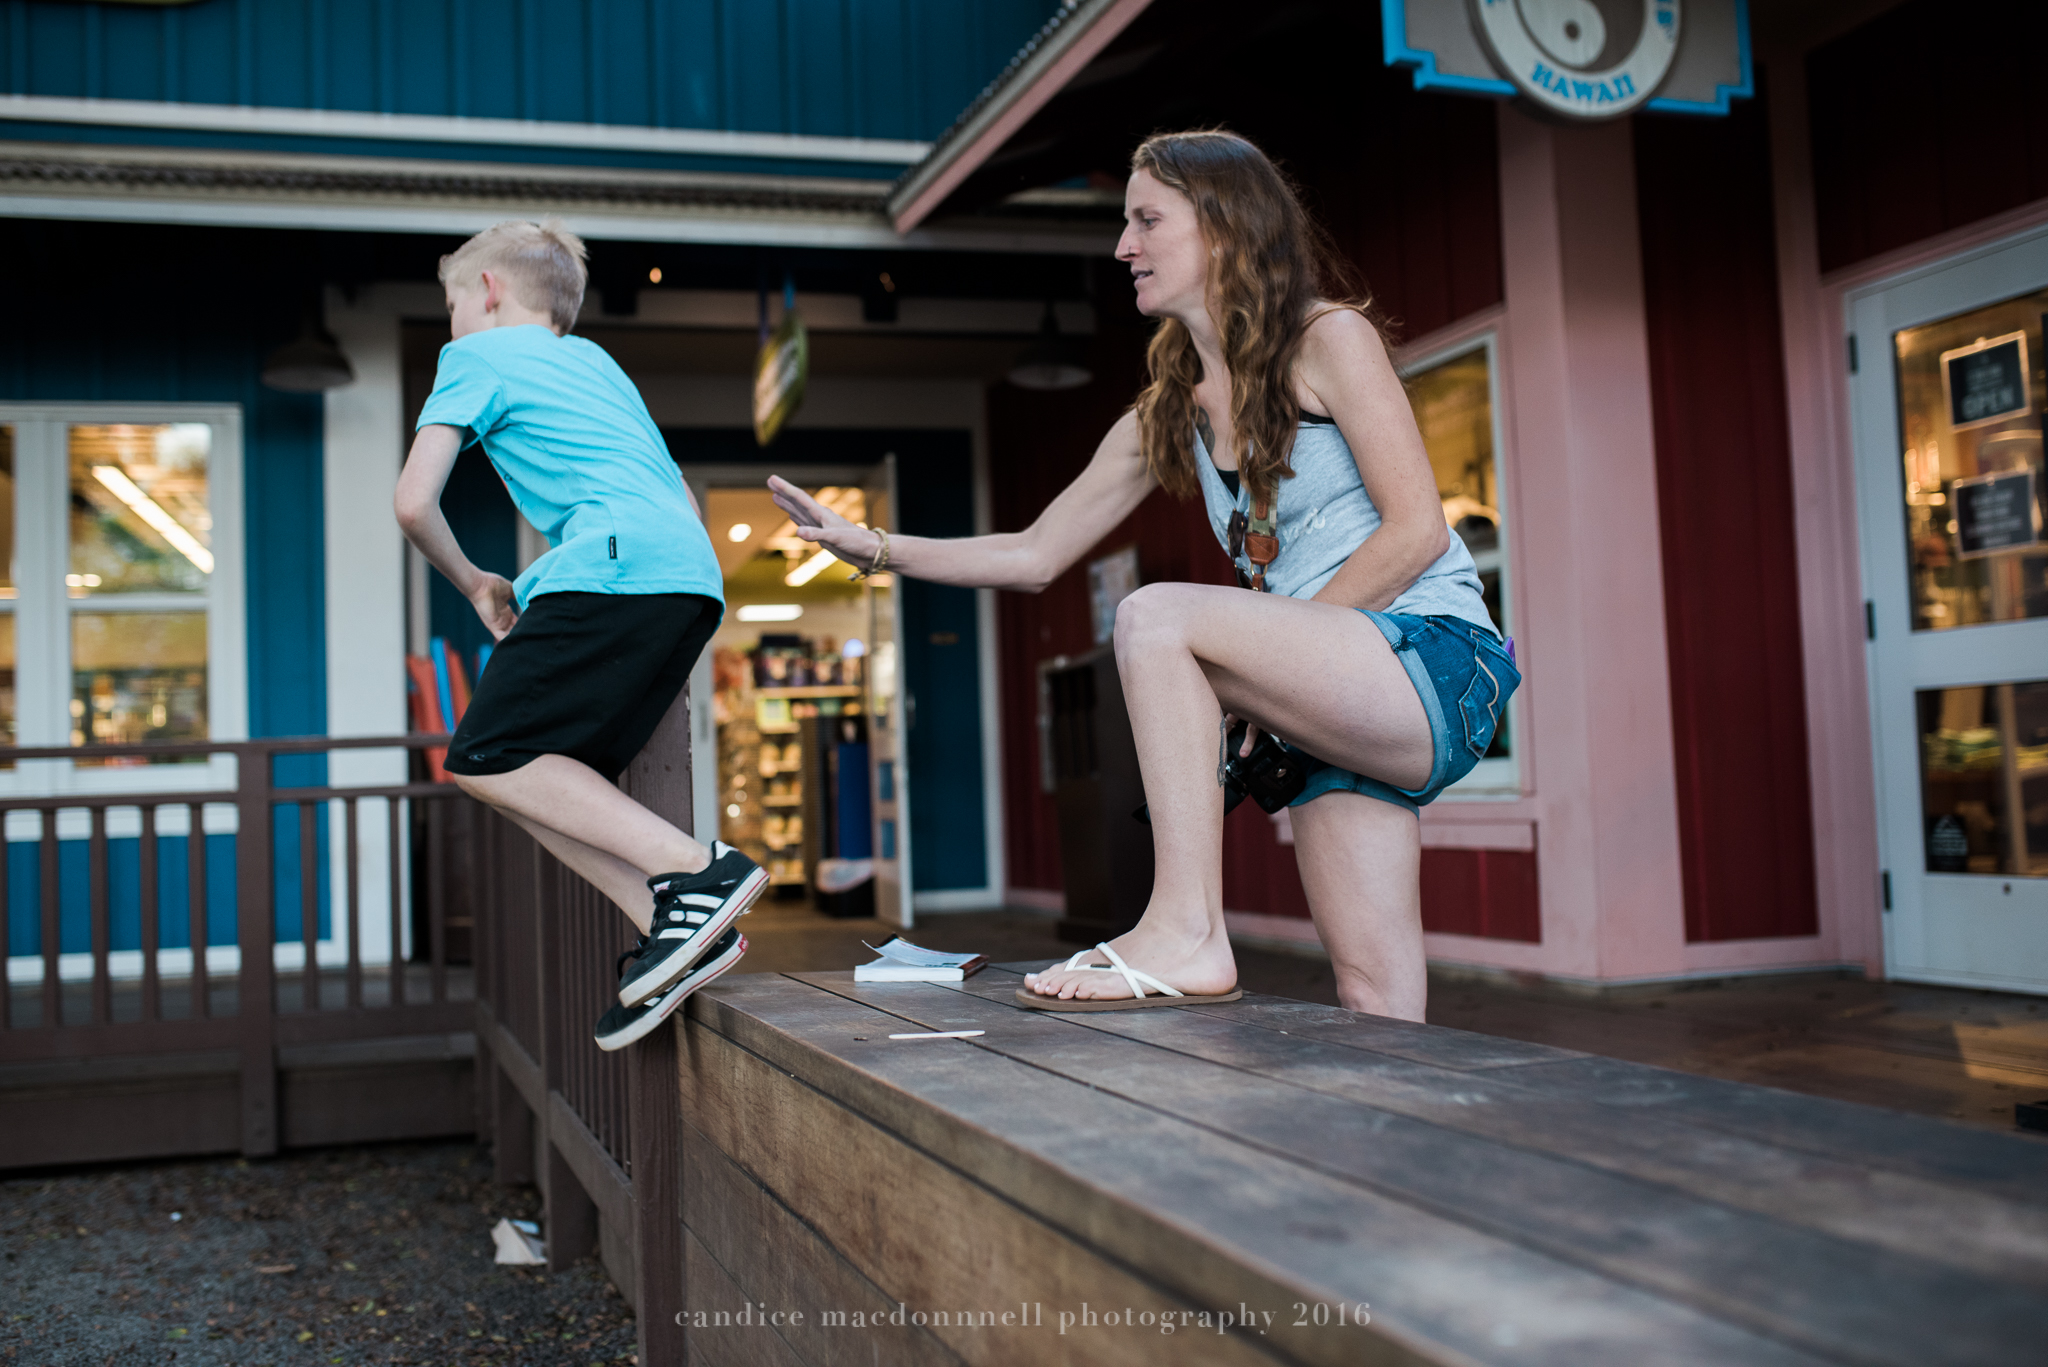 mom and son playing at matsamotos lifestyle photography by candice macdonnell photography, oahu hawaii documentary photographer